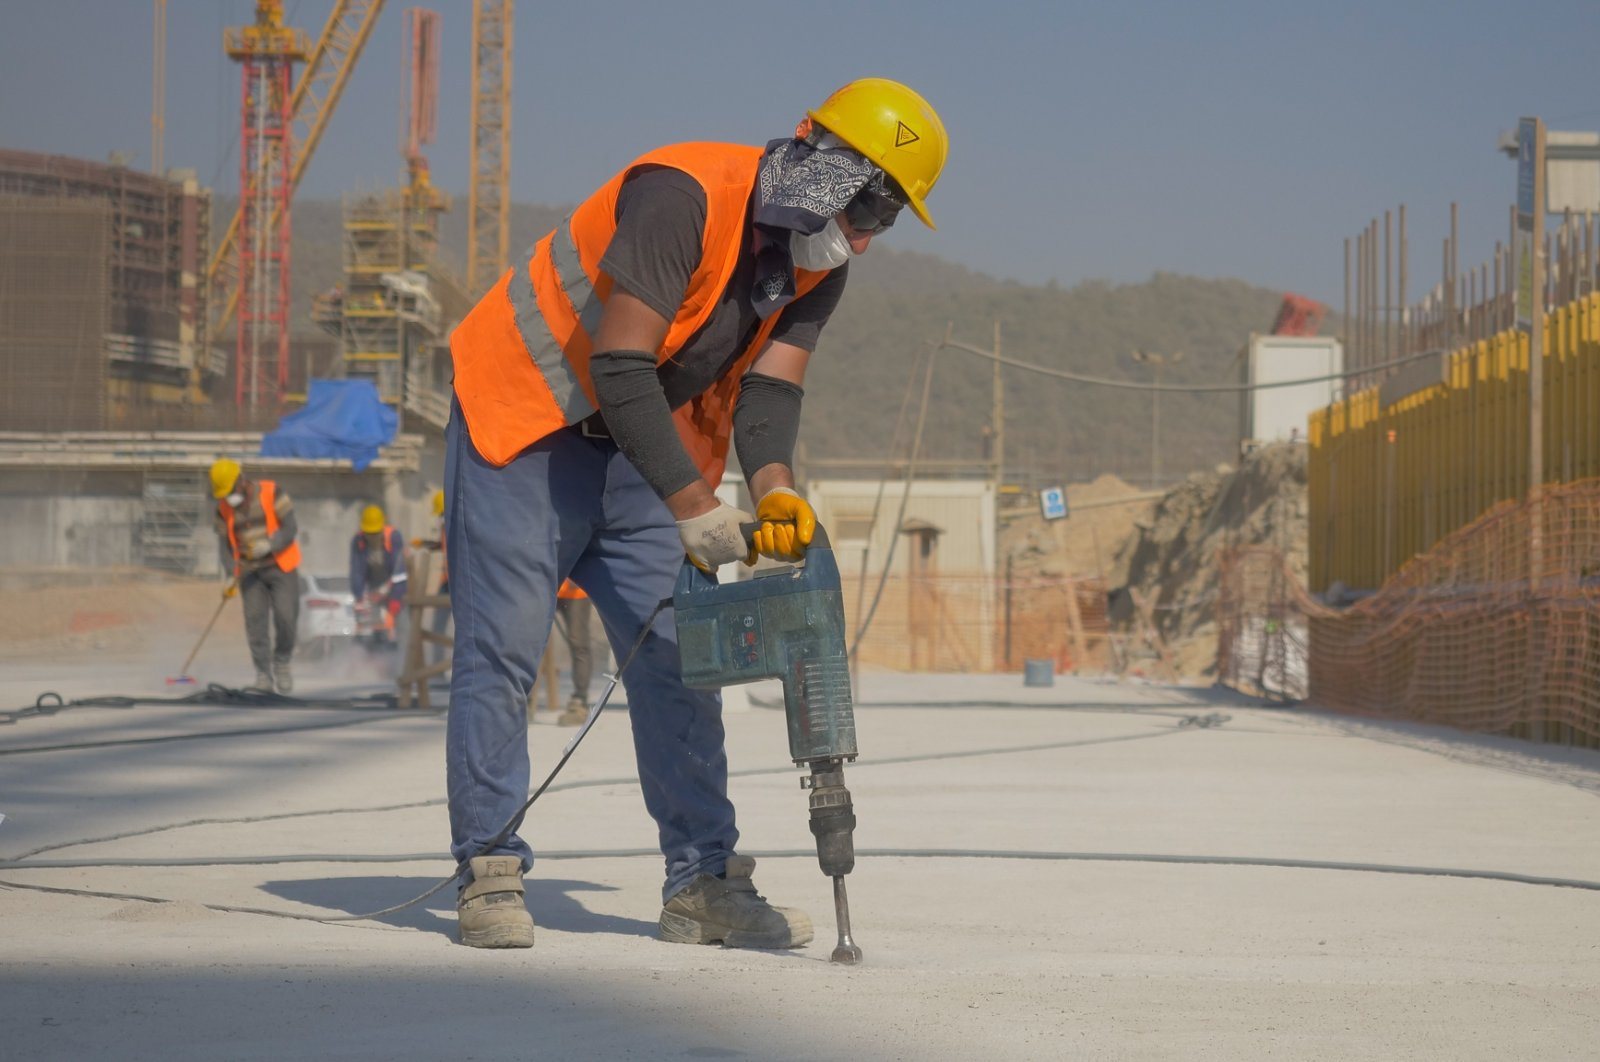 A staff member works on the ground at the Akkuyu NPP site in Mersin, southern Turkey, Sept. 22, 2020. (Photo by Akkuyu Nuclear Inc. via AA)